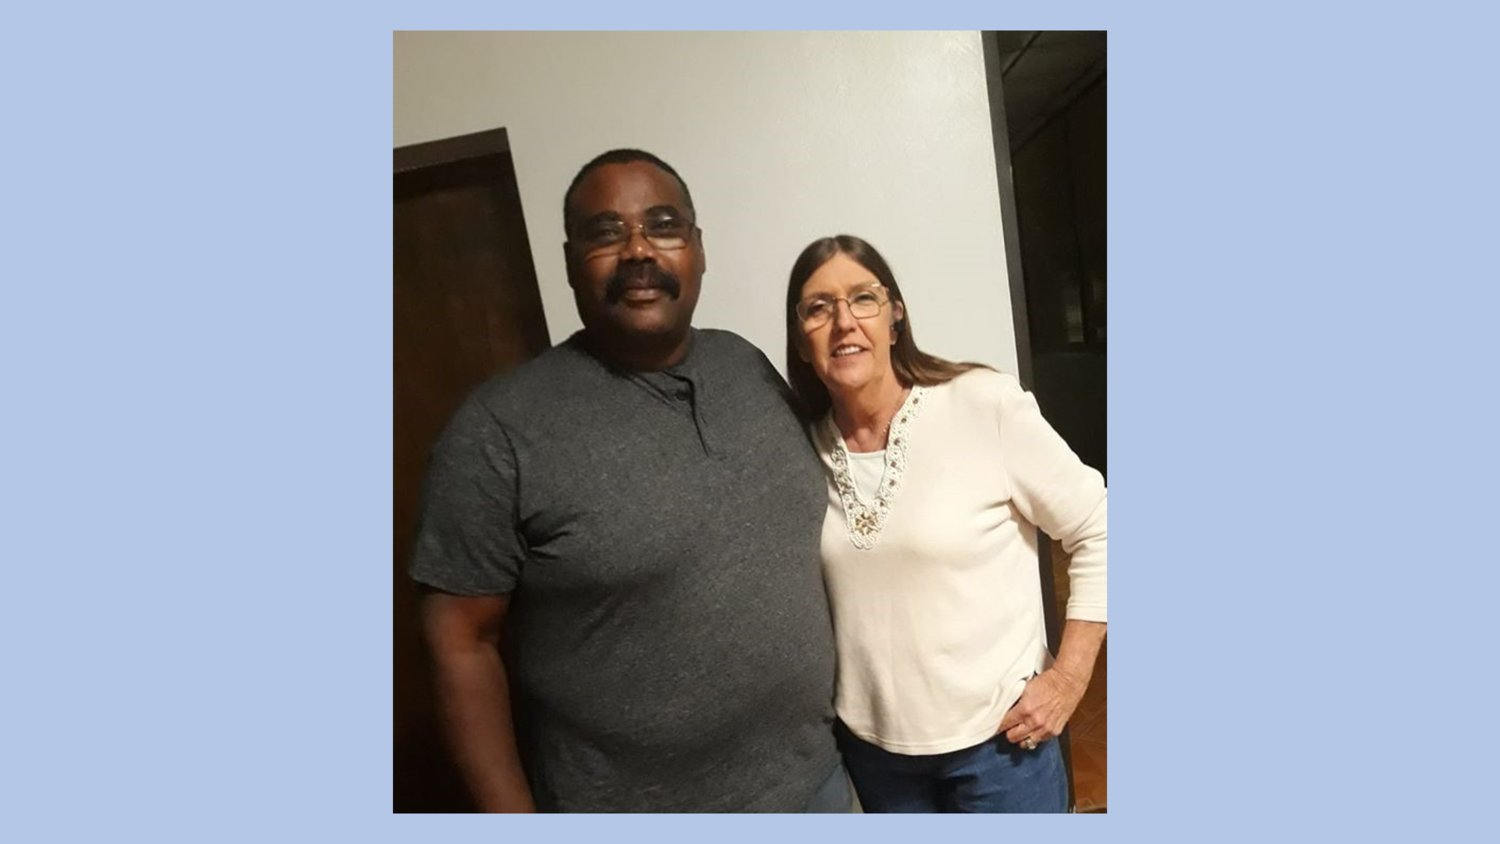 Alderwoman Kim Branch (right) and her husband, Mayor Darrell Branch (left) pose for a photo. The alderwoman serves in the Brookshire City Council's Seat 3 position and her husband was elected mayor in 2019.